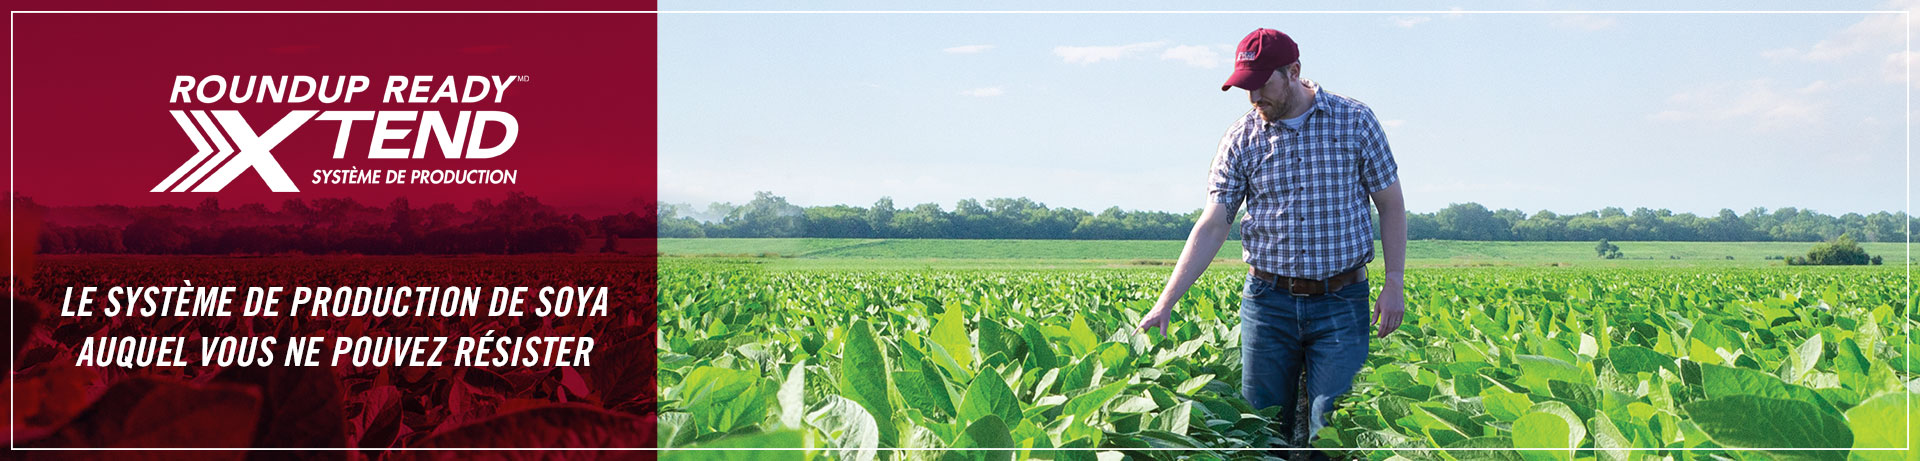 Roundup Ready Xtend Crop System - The soybean system you can't resist